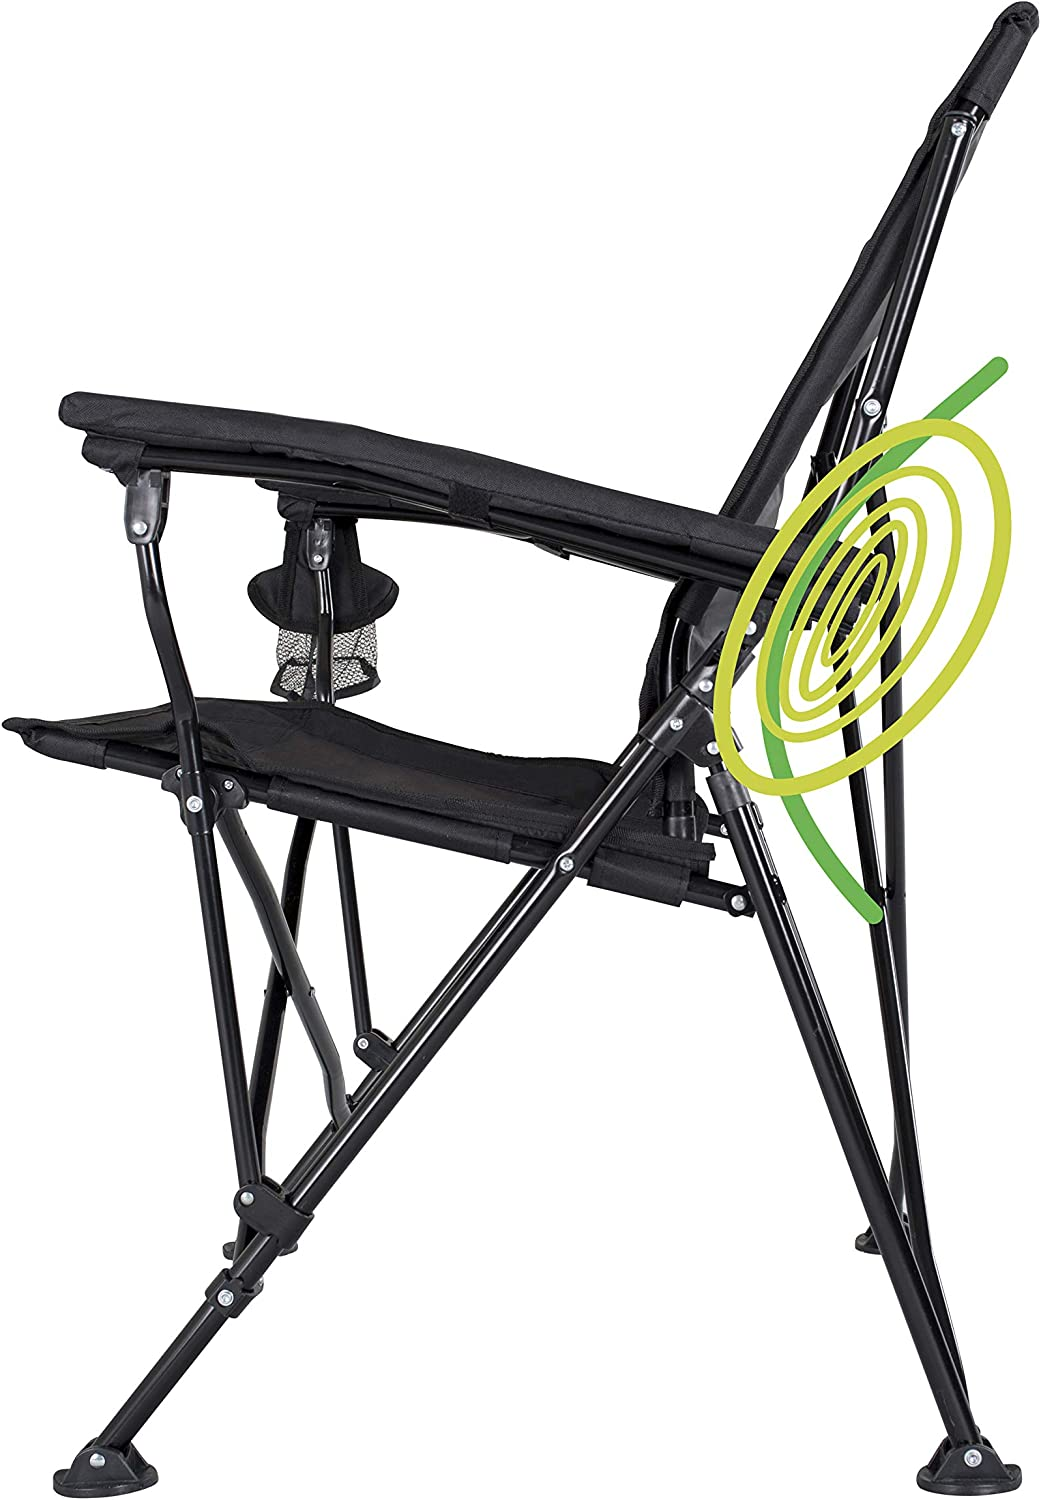 STRONGBACK Elite Best Camping Chair For Bad Back